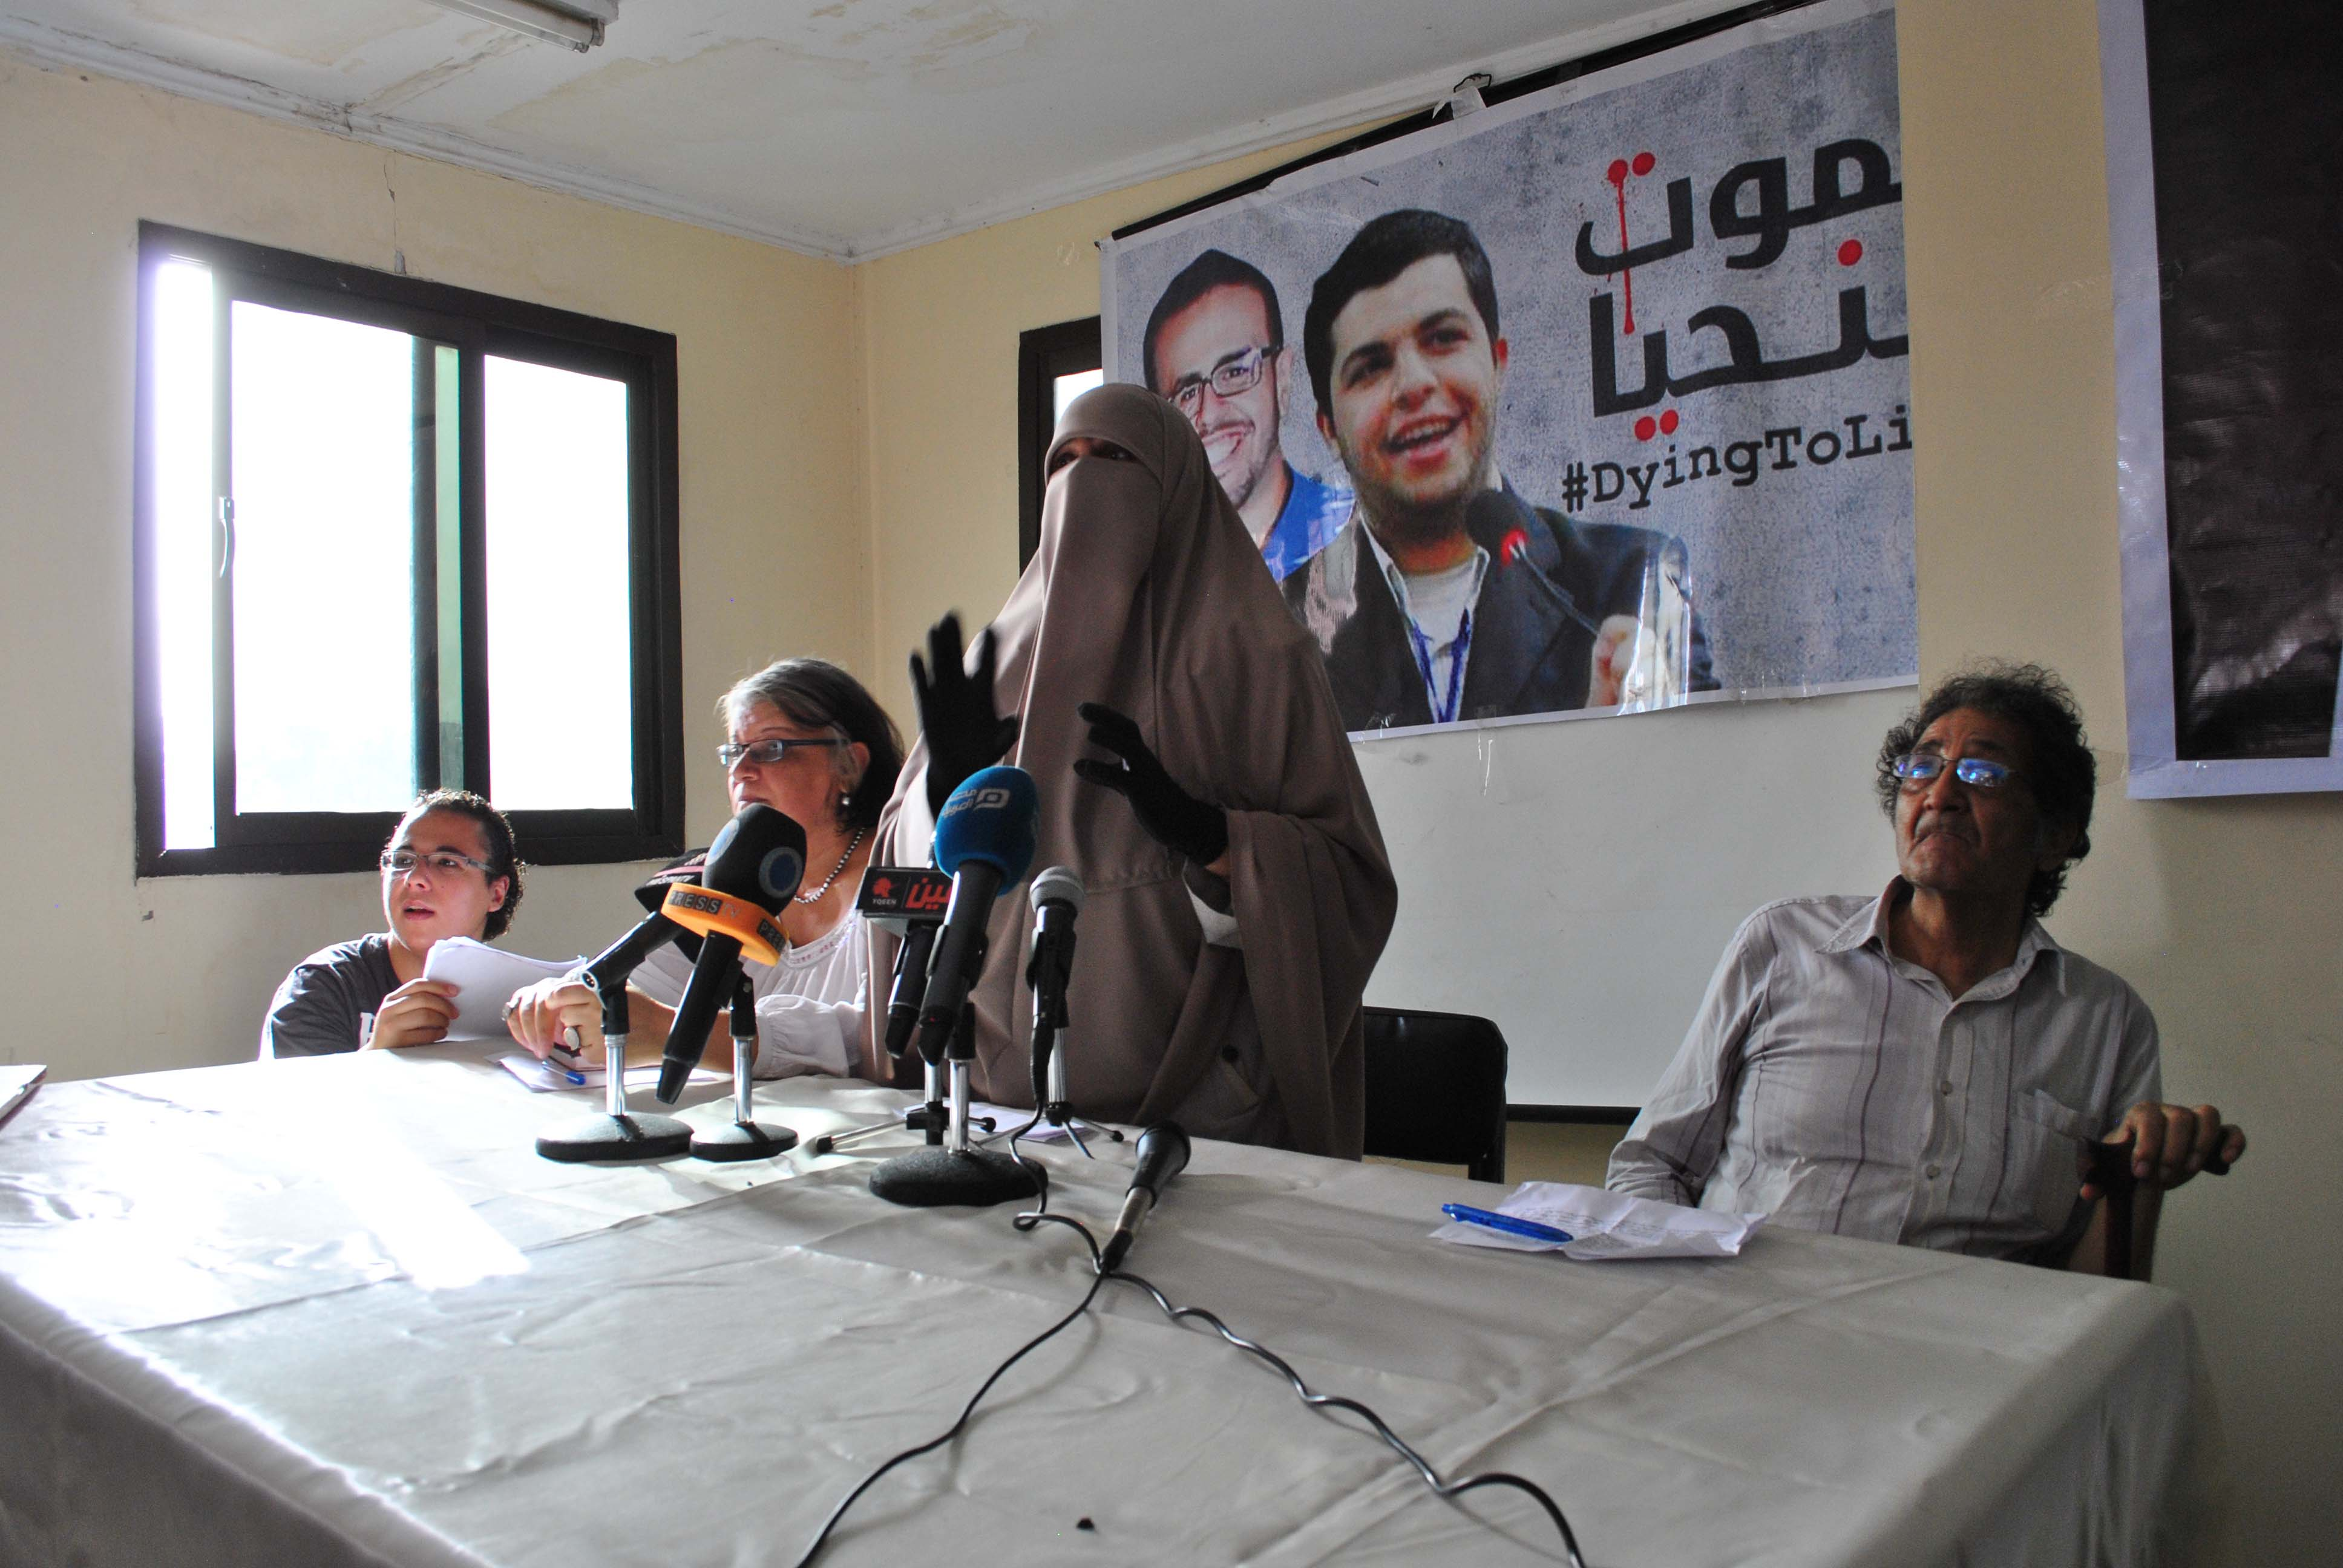 Ibrahim Al-Yamany's mother speaks about her son's hunger strike at a press conference in the Hisham Mubarak  Law Center last July. (Photo by: Jihad Abaza)